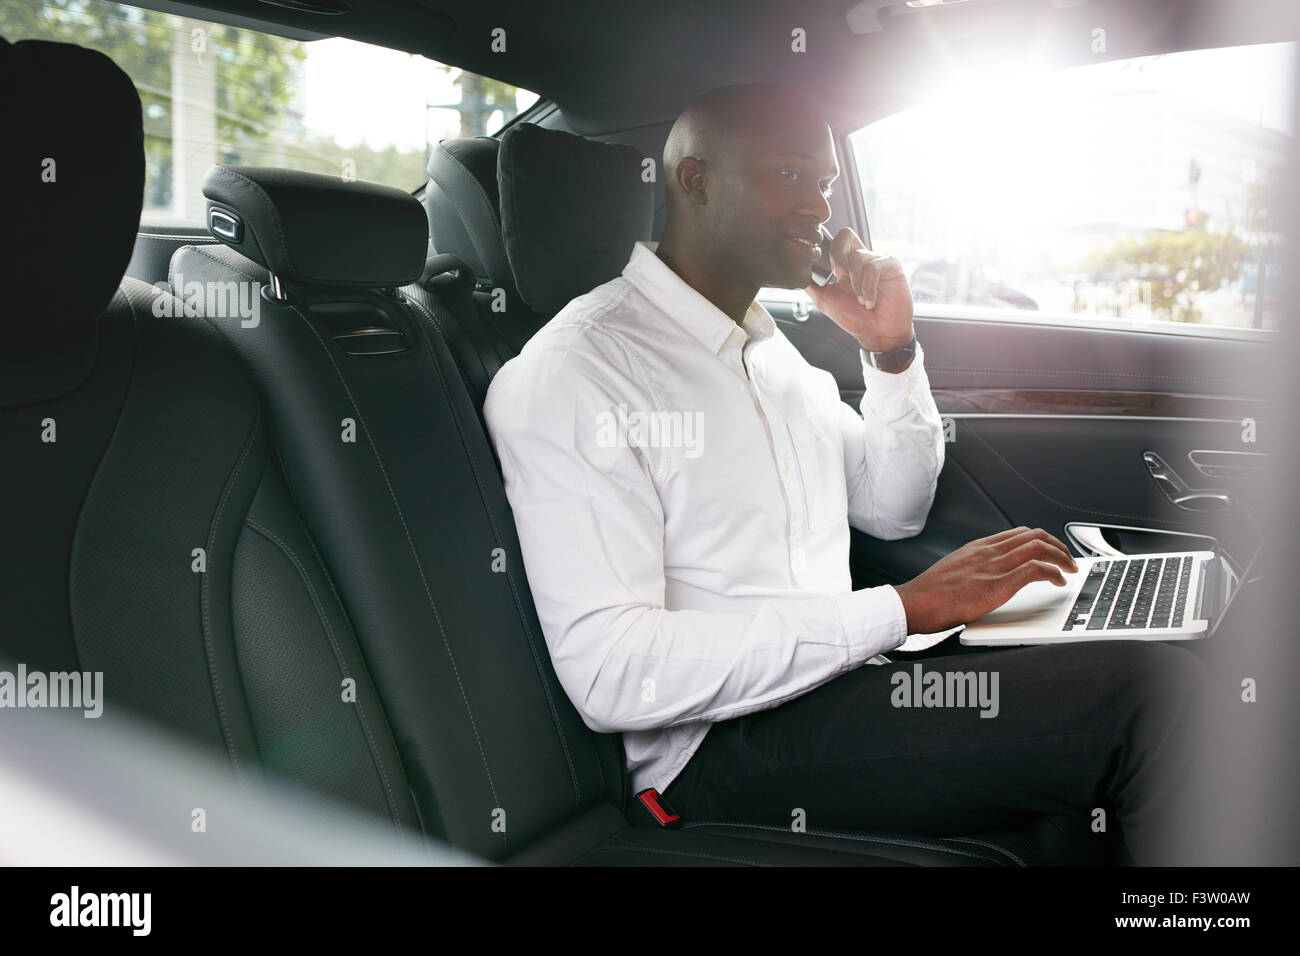 Businessman with laptop receiving a phone call on the backseat of a car. African businessman working during travelling - Stock Image